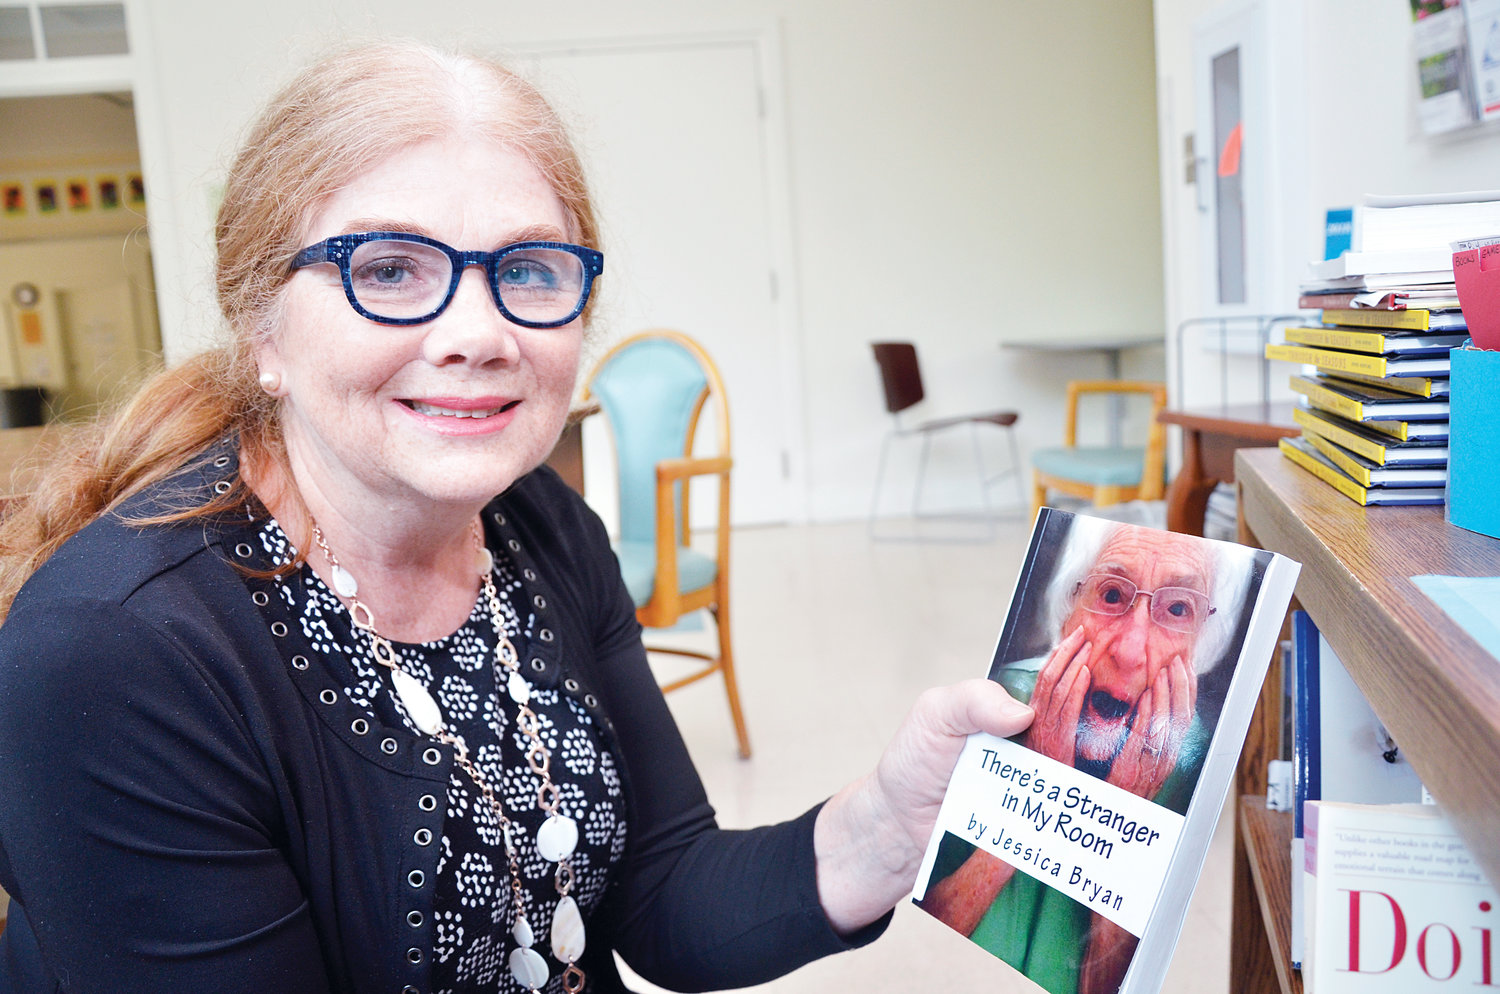 The Chatham Council on Aging's Susan Hardy shows a book written by Jessica Bryan detailing the experience, and sharing ideas, for a caregiver to a person with Alzheimer's.